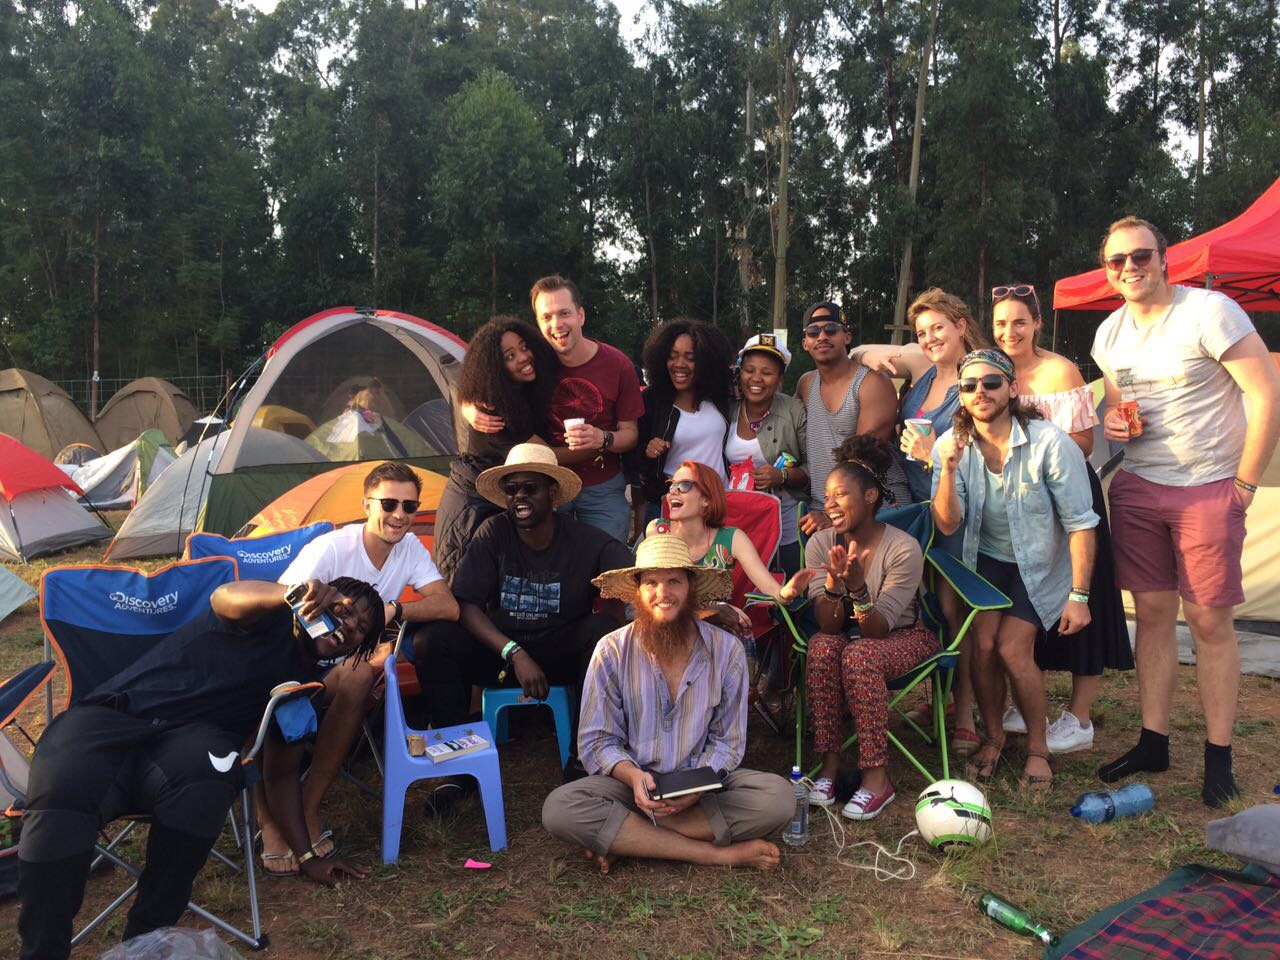 The group at the camping site at Bushfire Festival in Swaziland